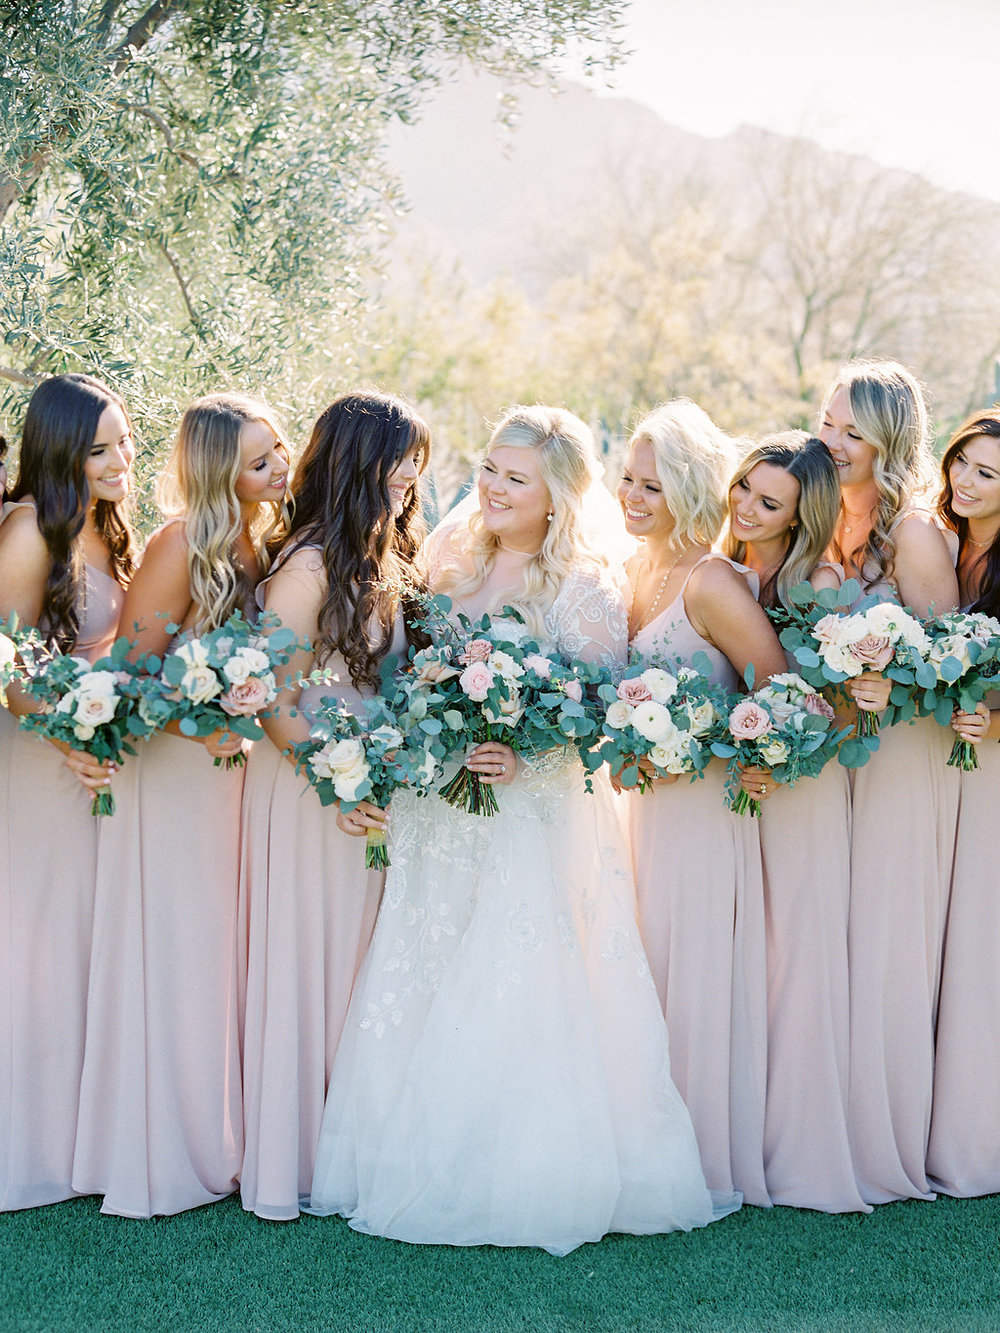 Bridesmaids with flowers.jpg